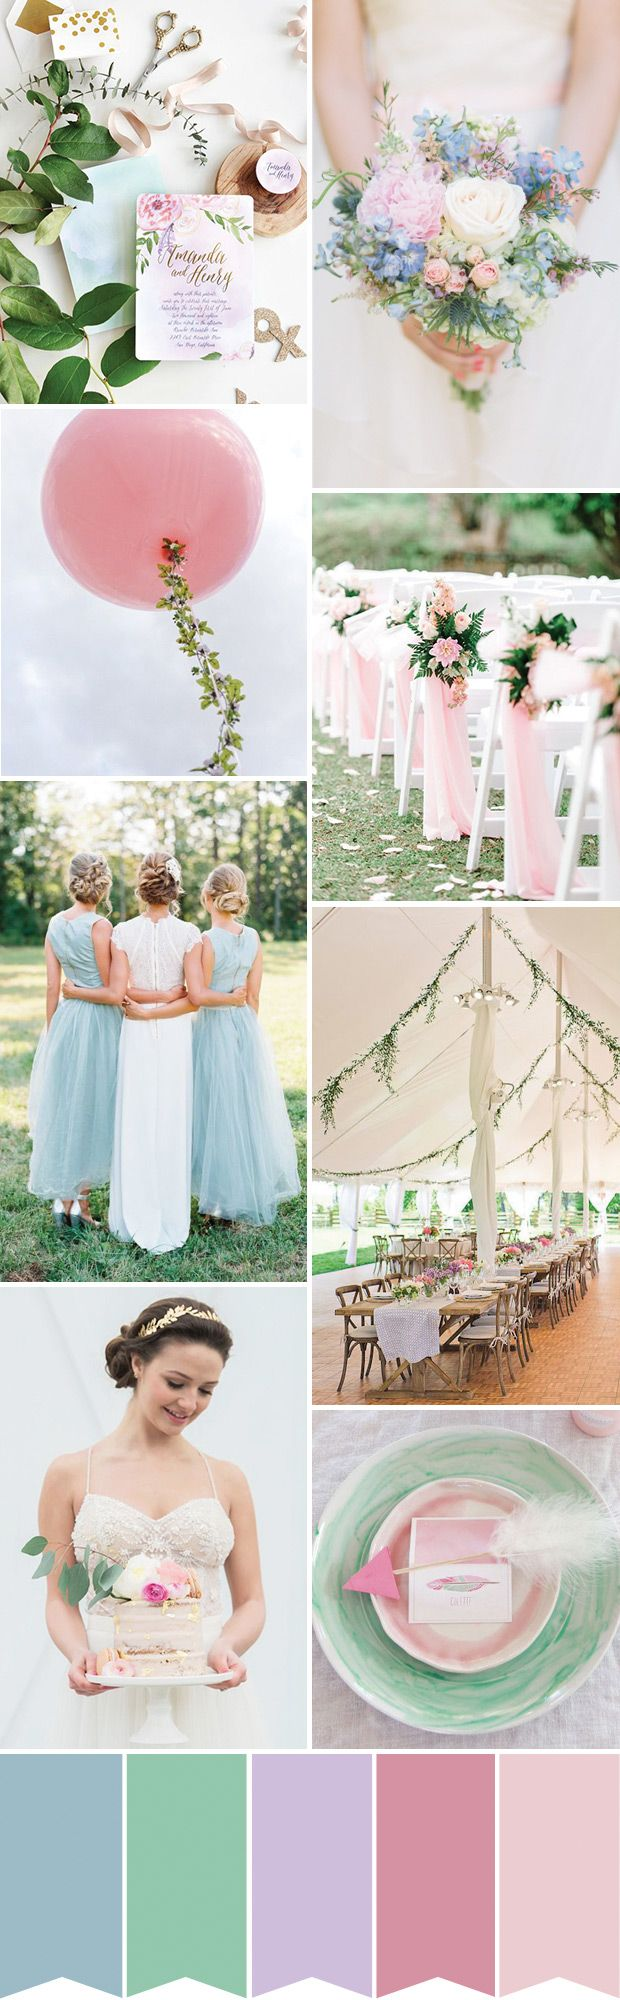 1055 best Wedding Ideas images on Pinterest | Weddings, Wedding ...